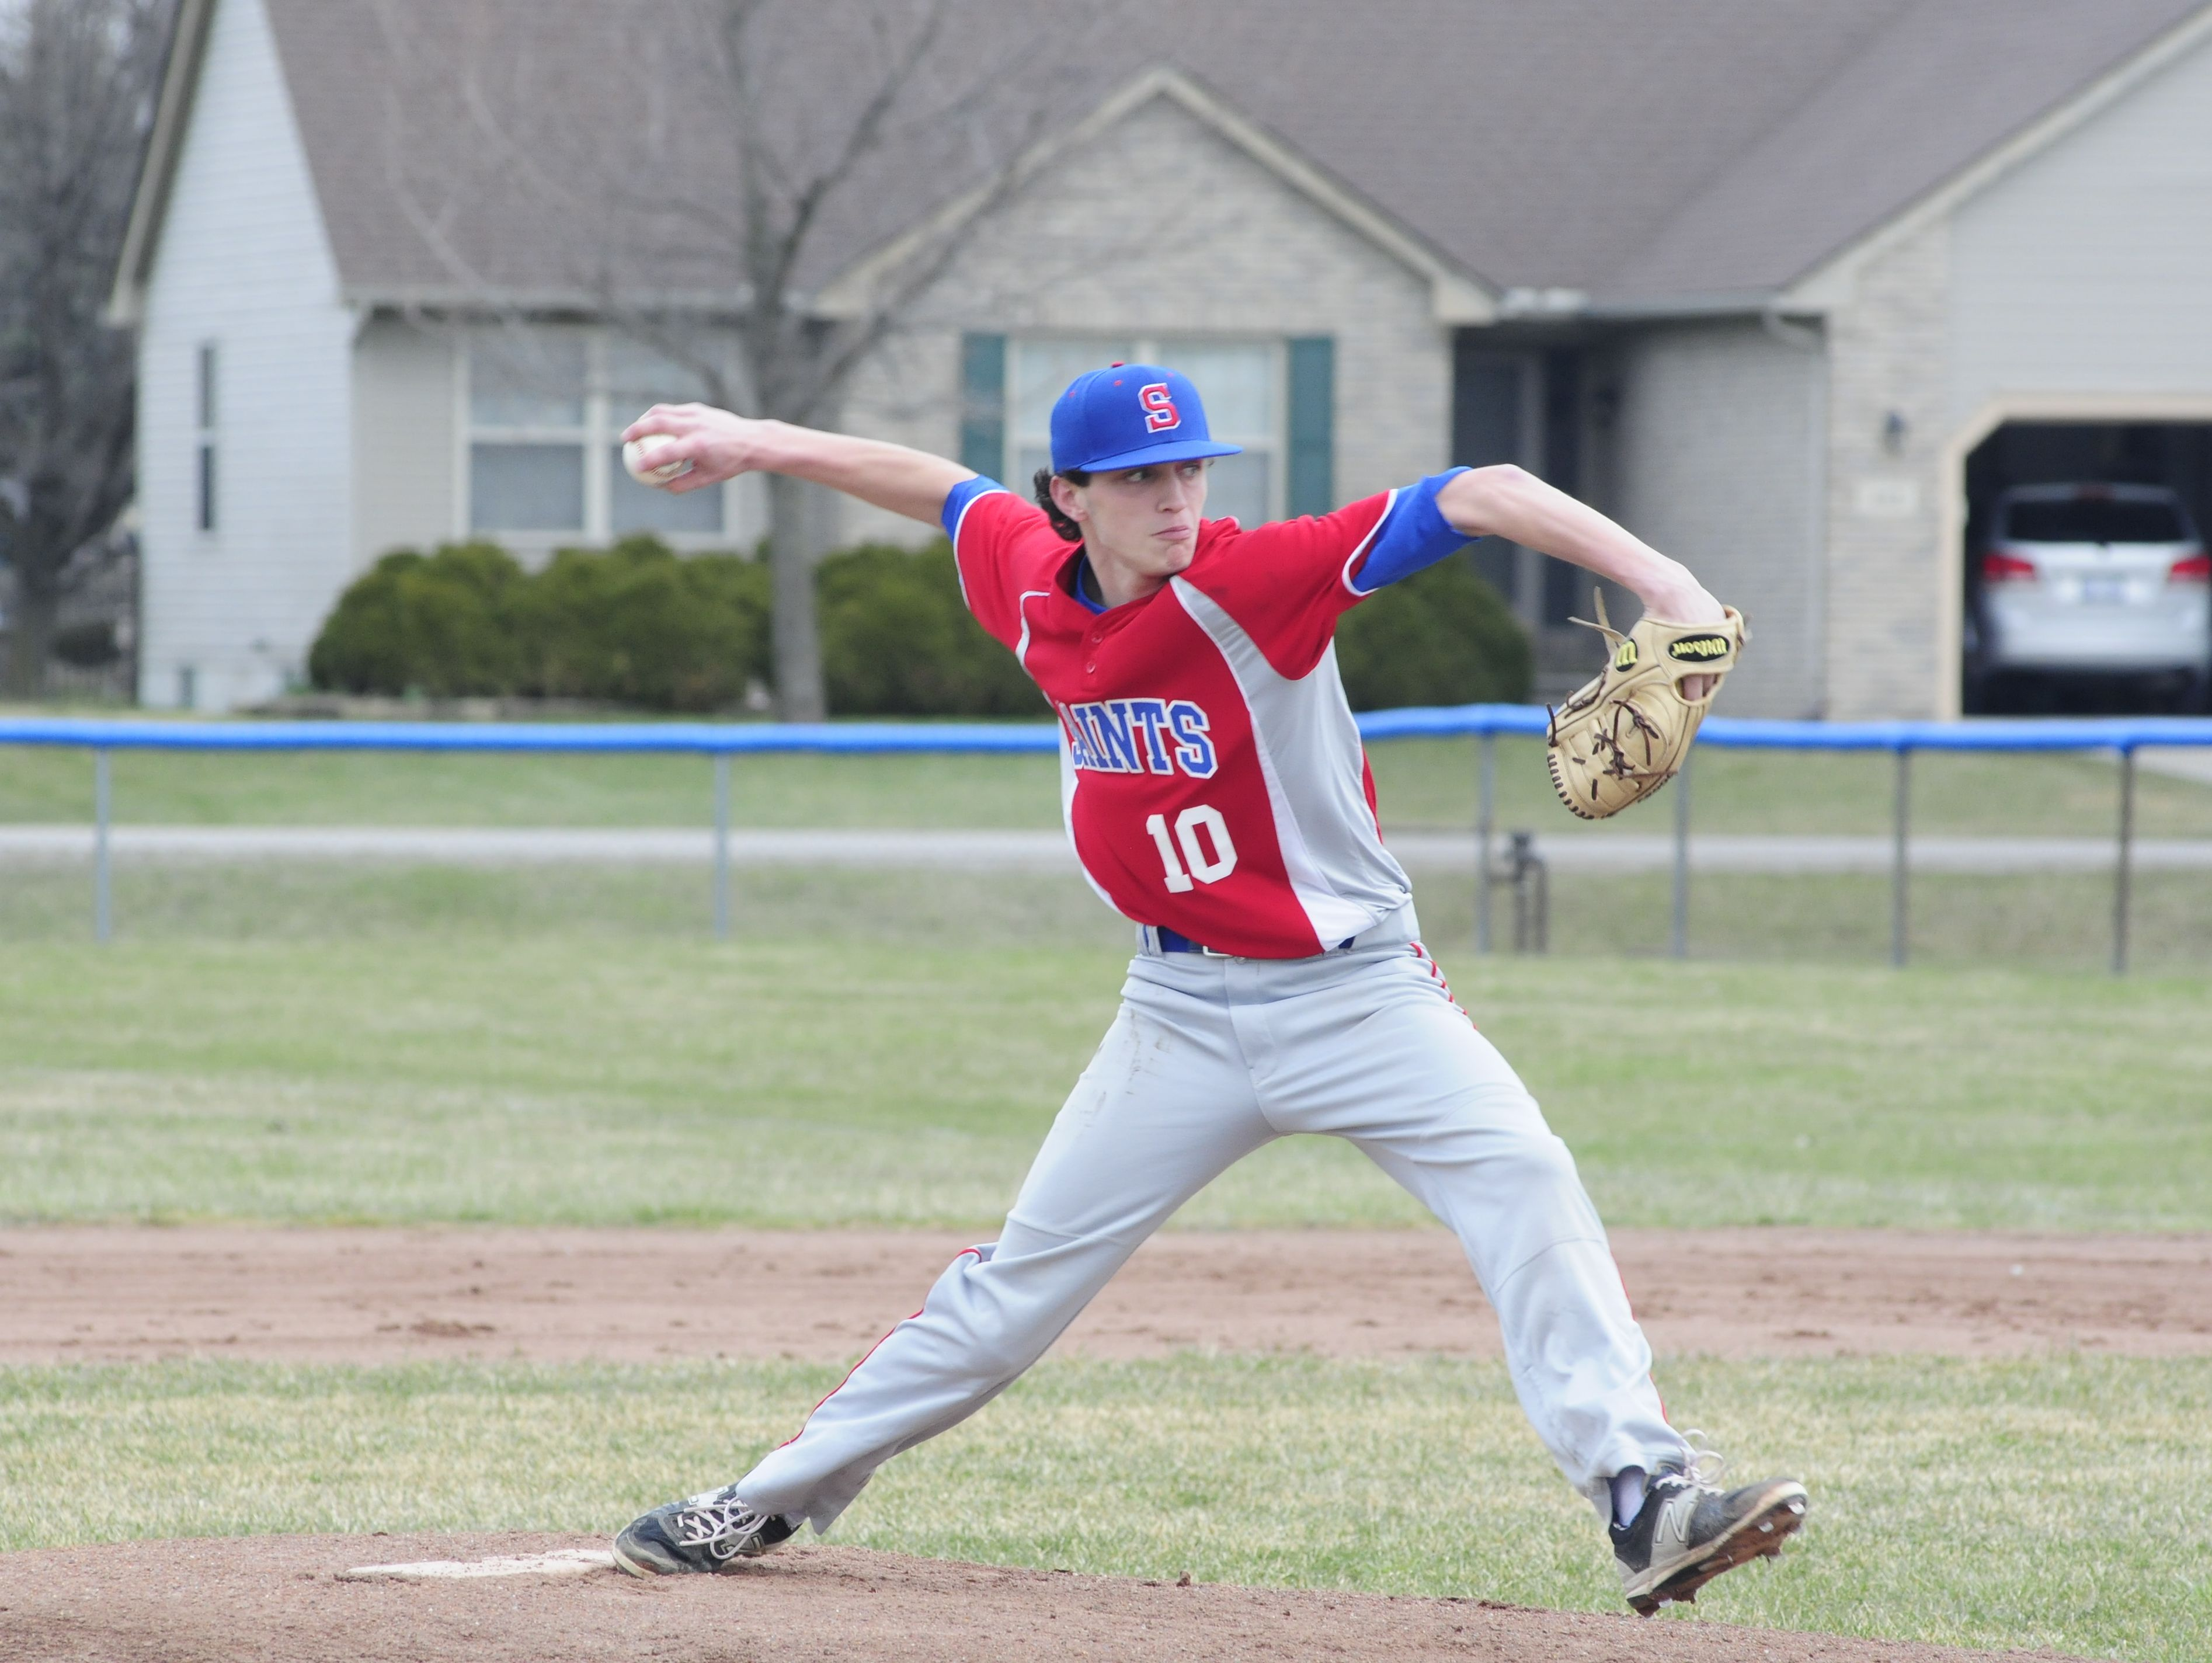 St. Clair sophomore Ian Janssen throws a pitch in the first inning against Yale on March 30, 2016 at St. Clair High School.